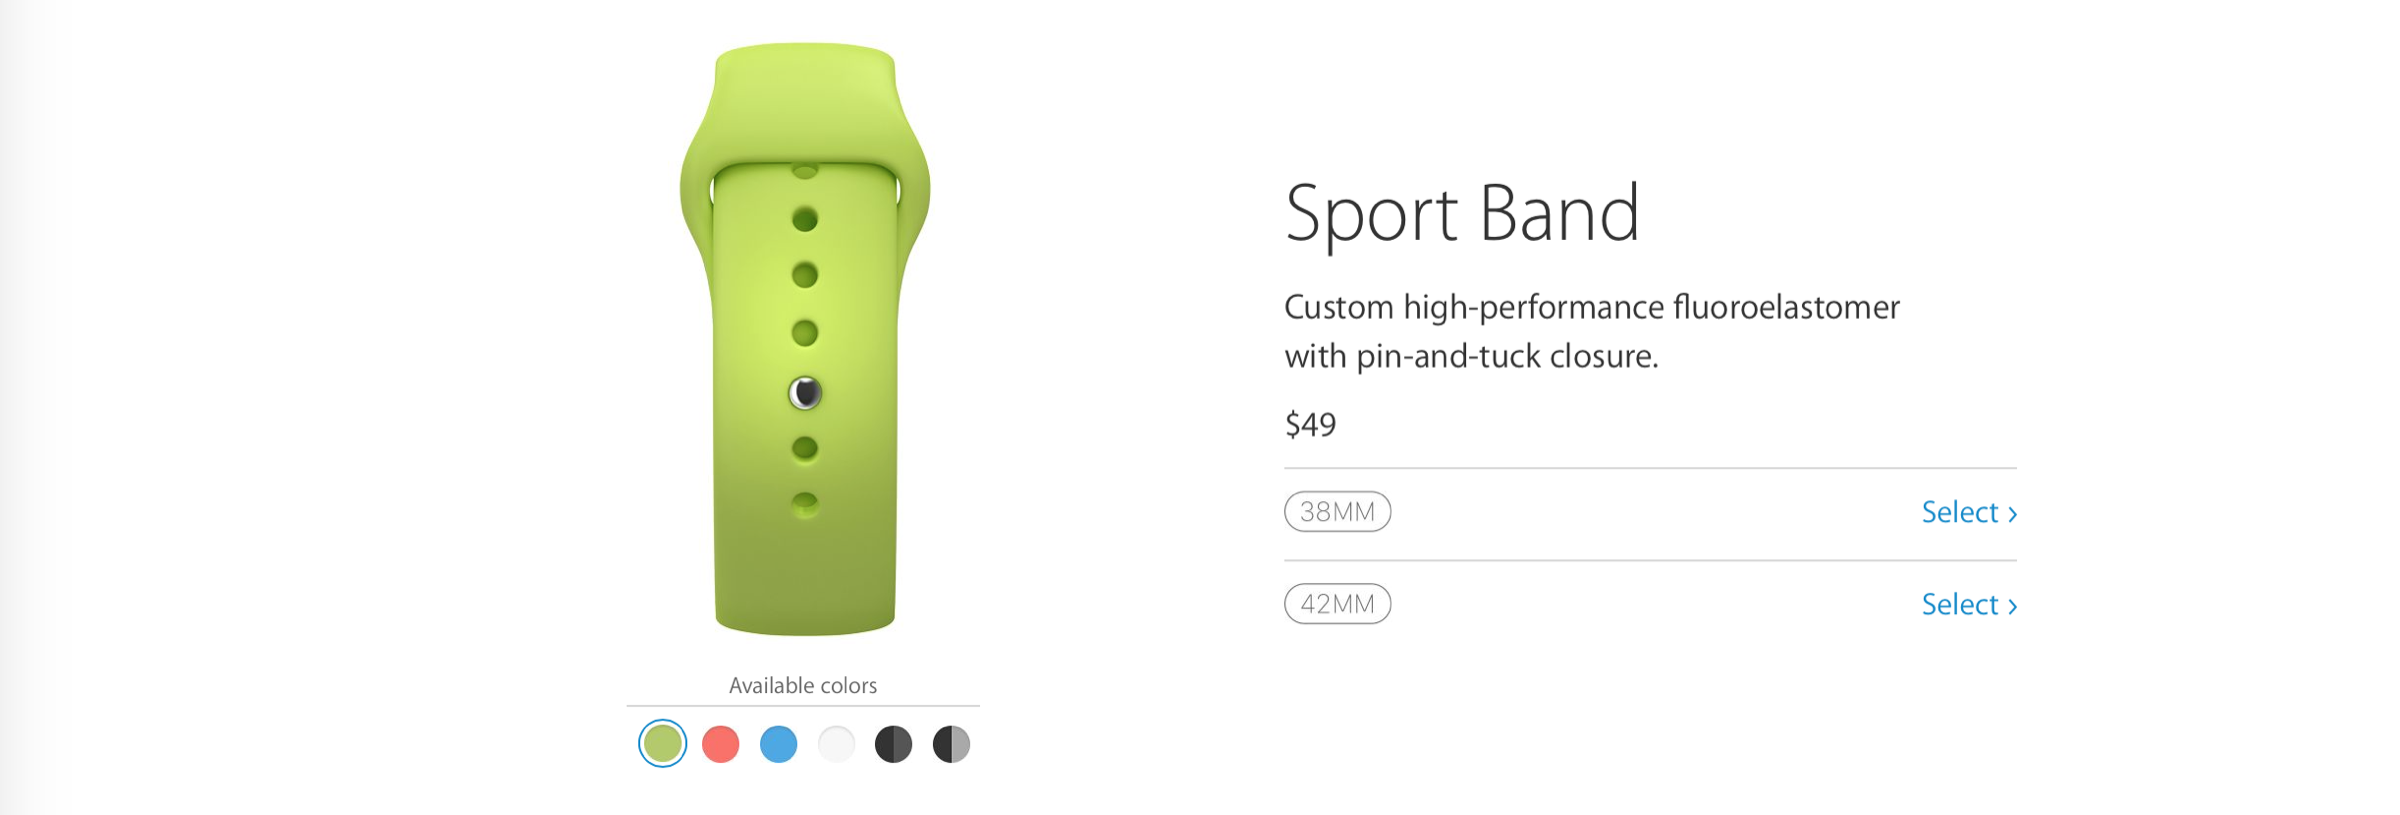 Meet iBandSwap, a service for trading your unwanted Watch bands